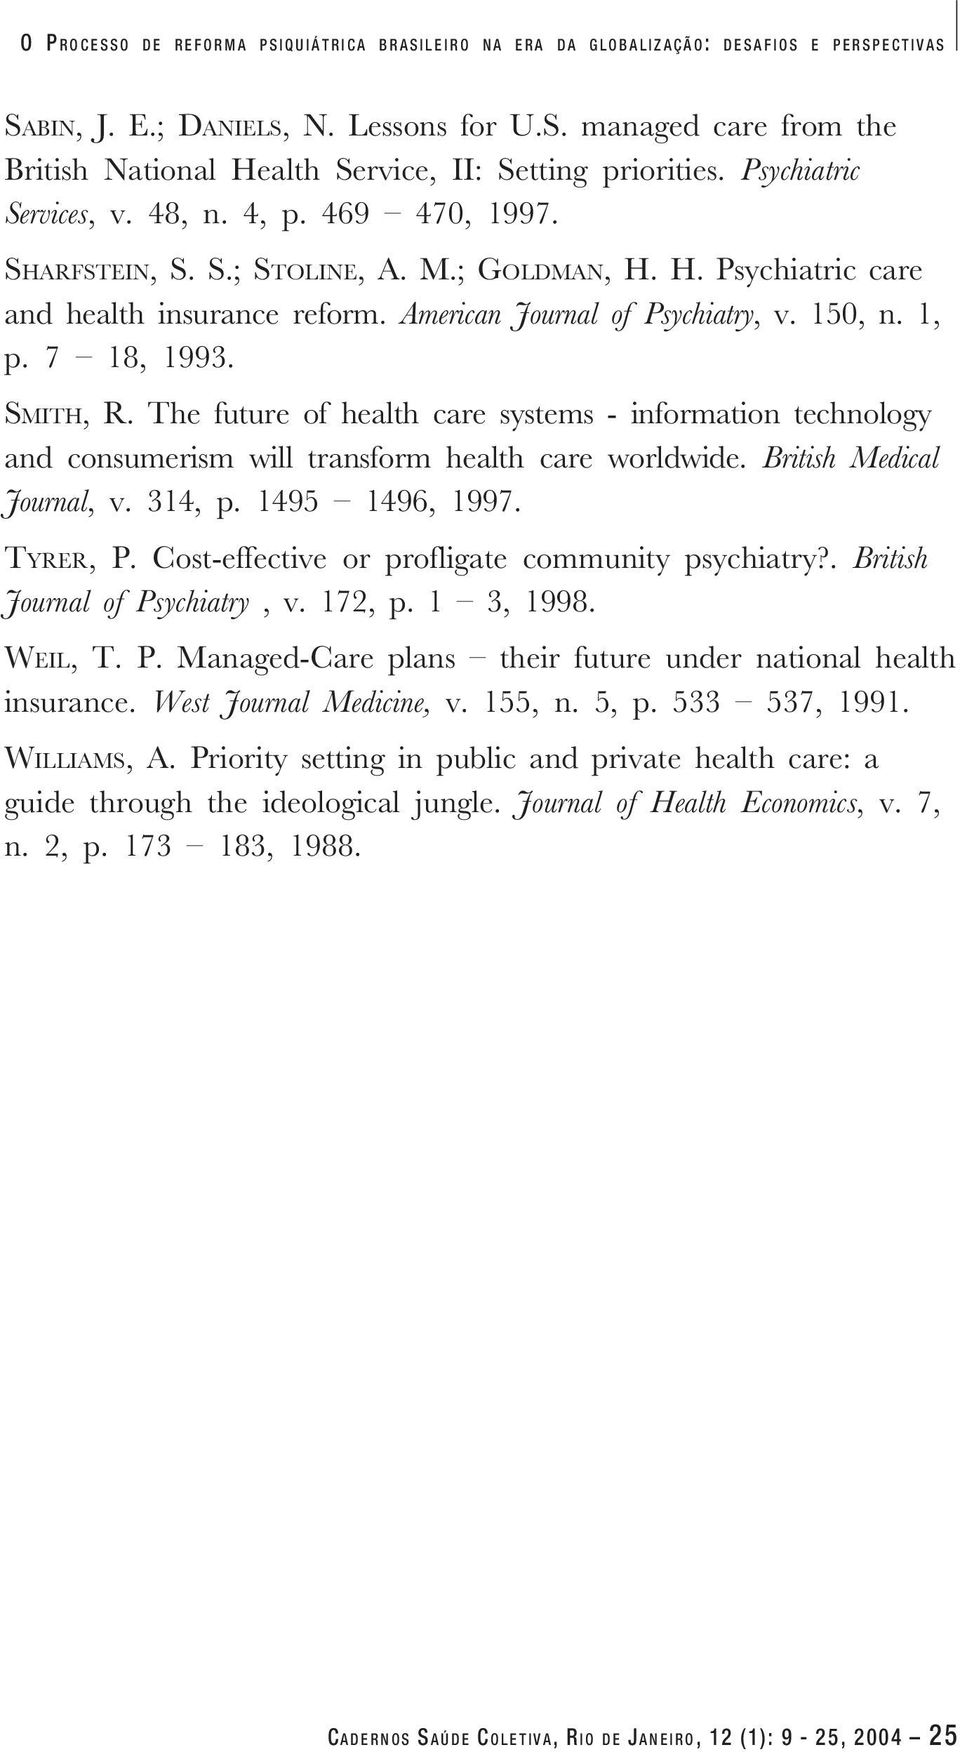 7 18, 1993. SMITH, R. The future of health care systems - information technology and consumerism will transform health care worldwide. British Medical Journal, v. 314, p. 1495 1496, 1997. TYRER, P.